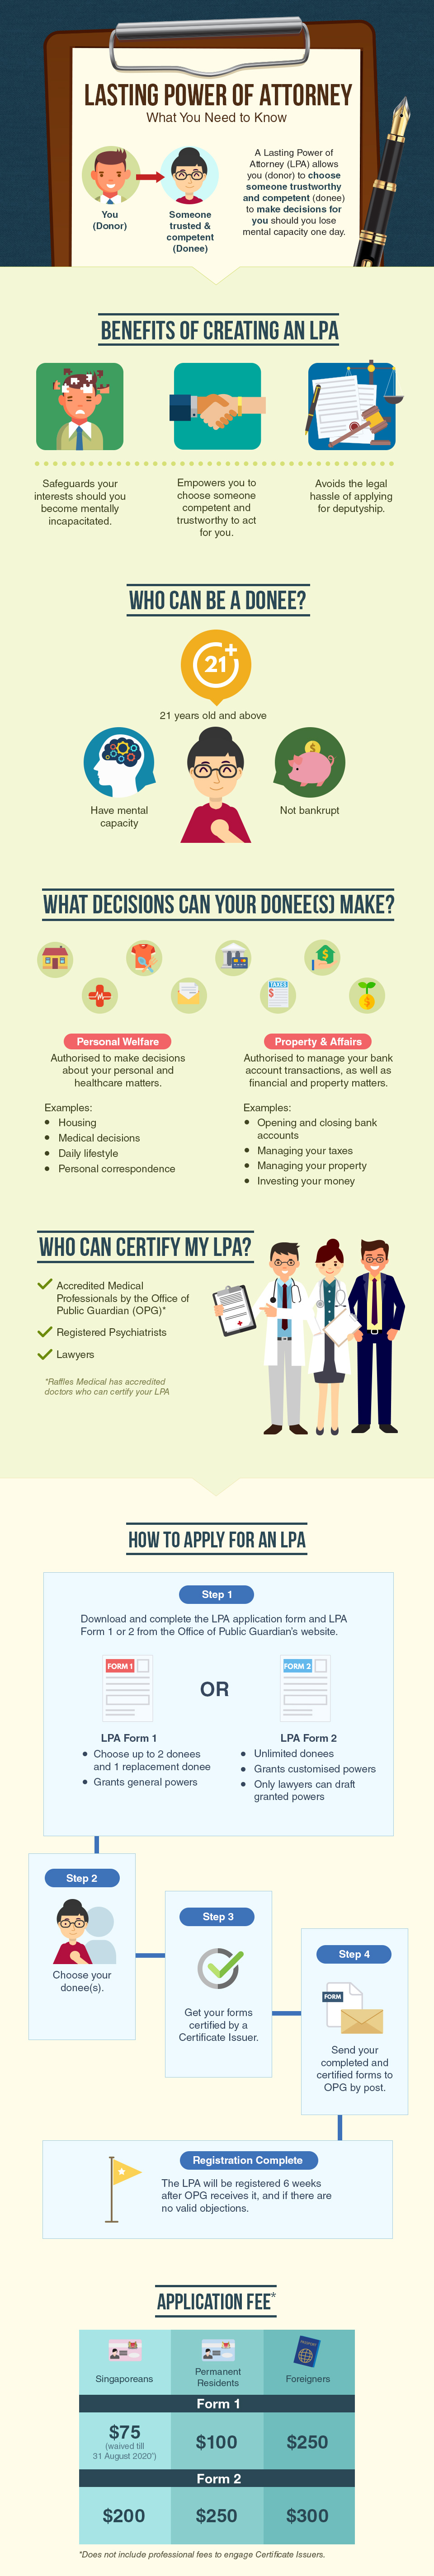 lasting power of attorney lpa singapore infographic